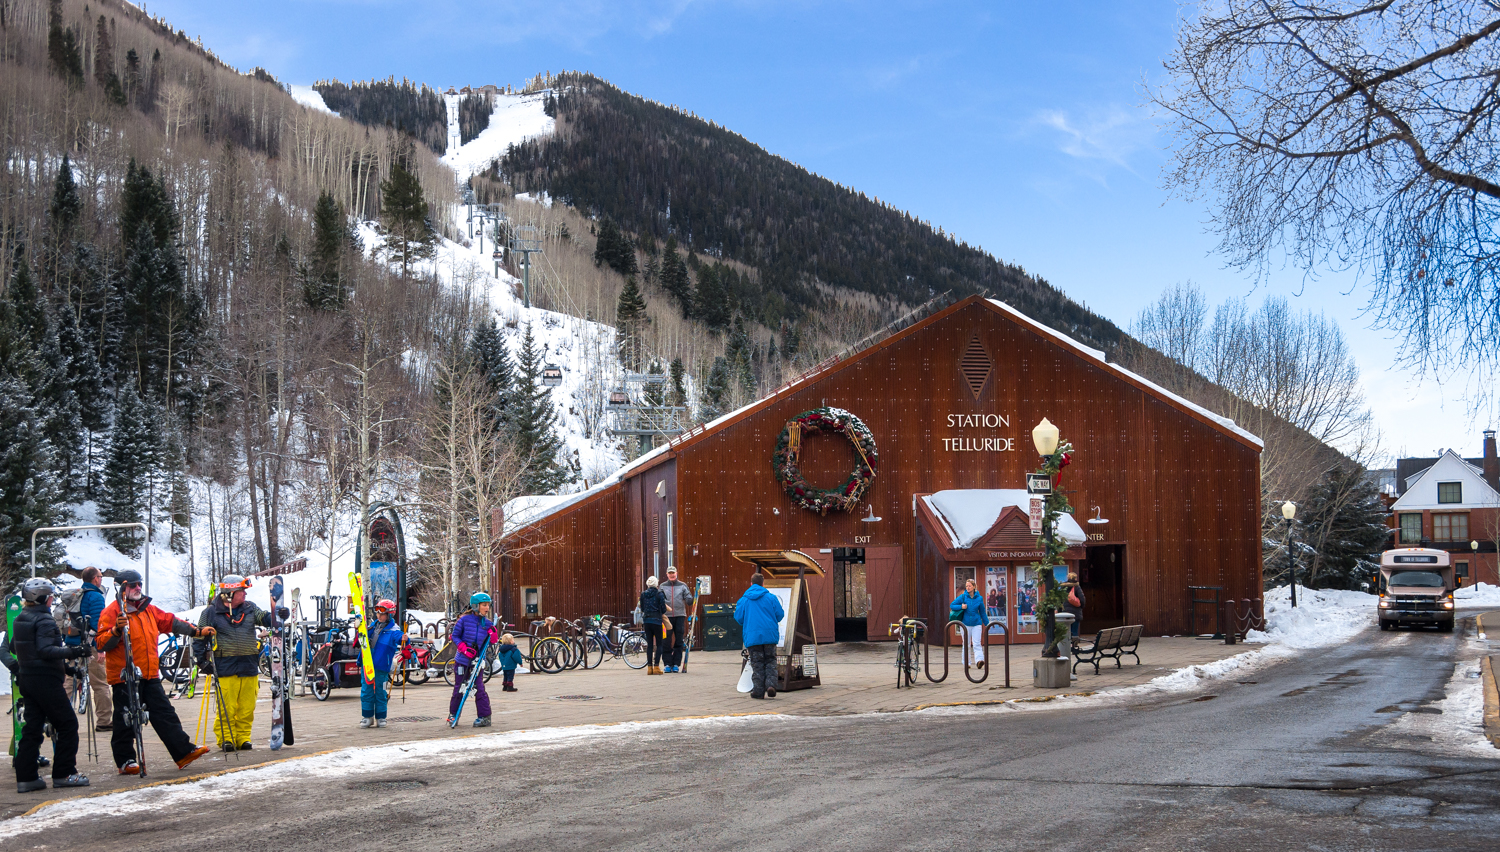 Front Picture of the Gondola Station Telluride